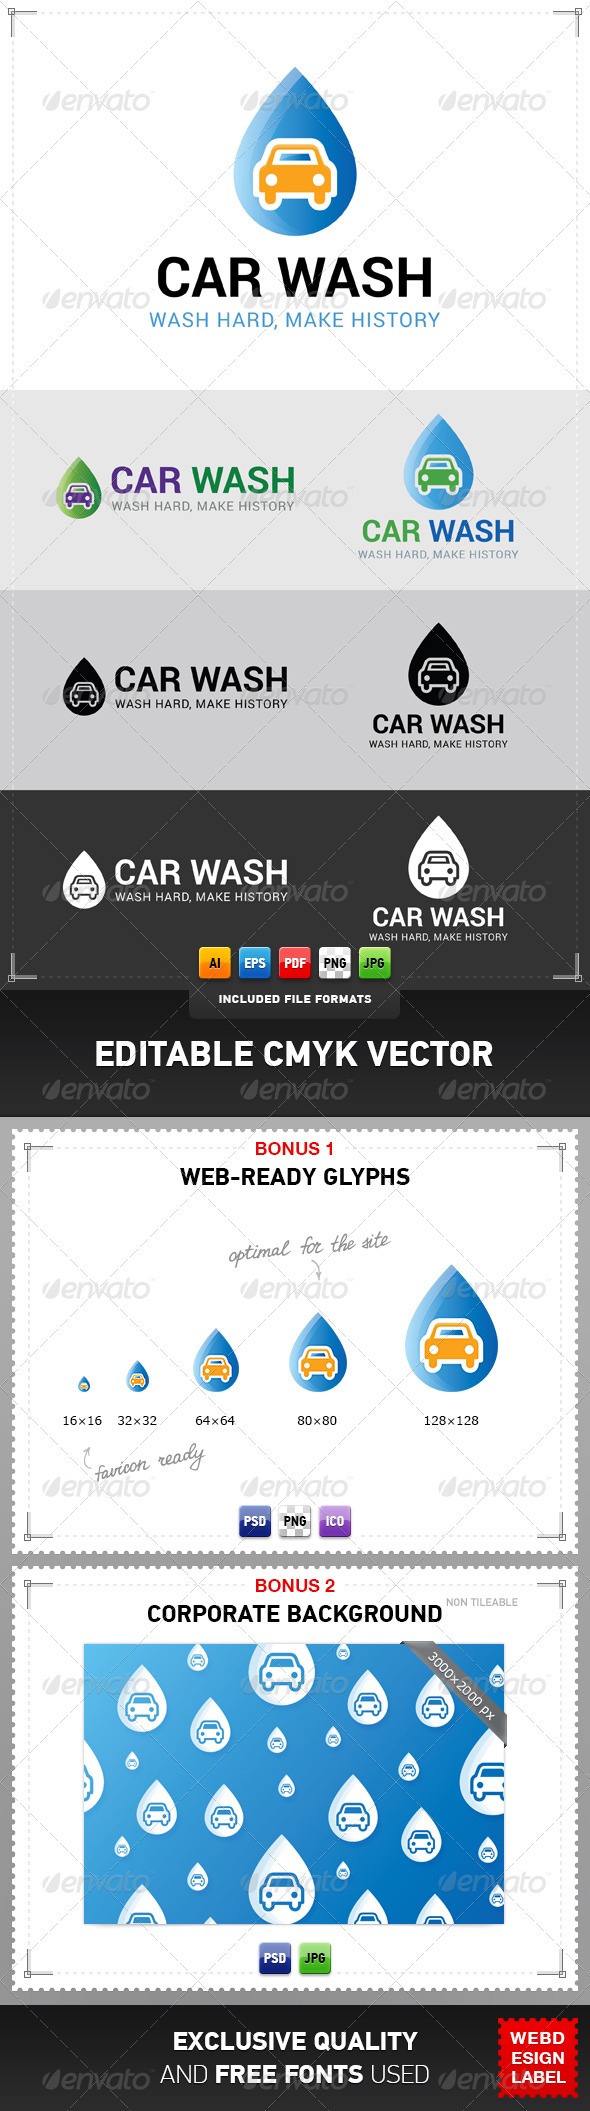 Car Wash Logo - Symbols Logo Templates